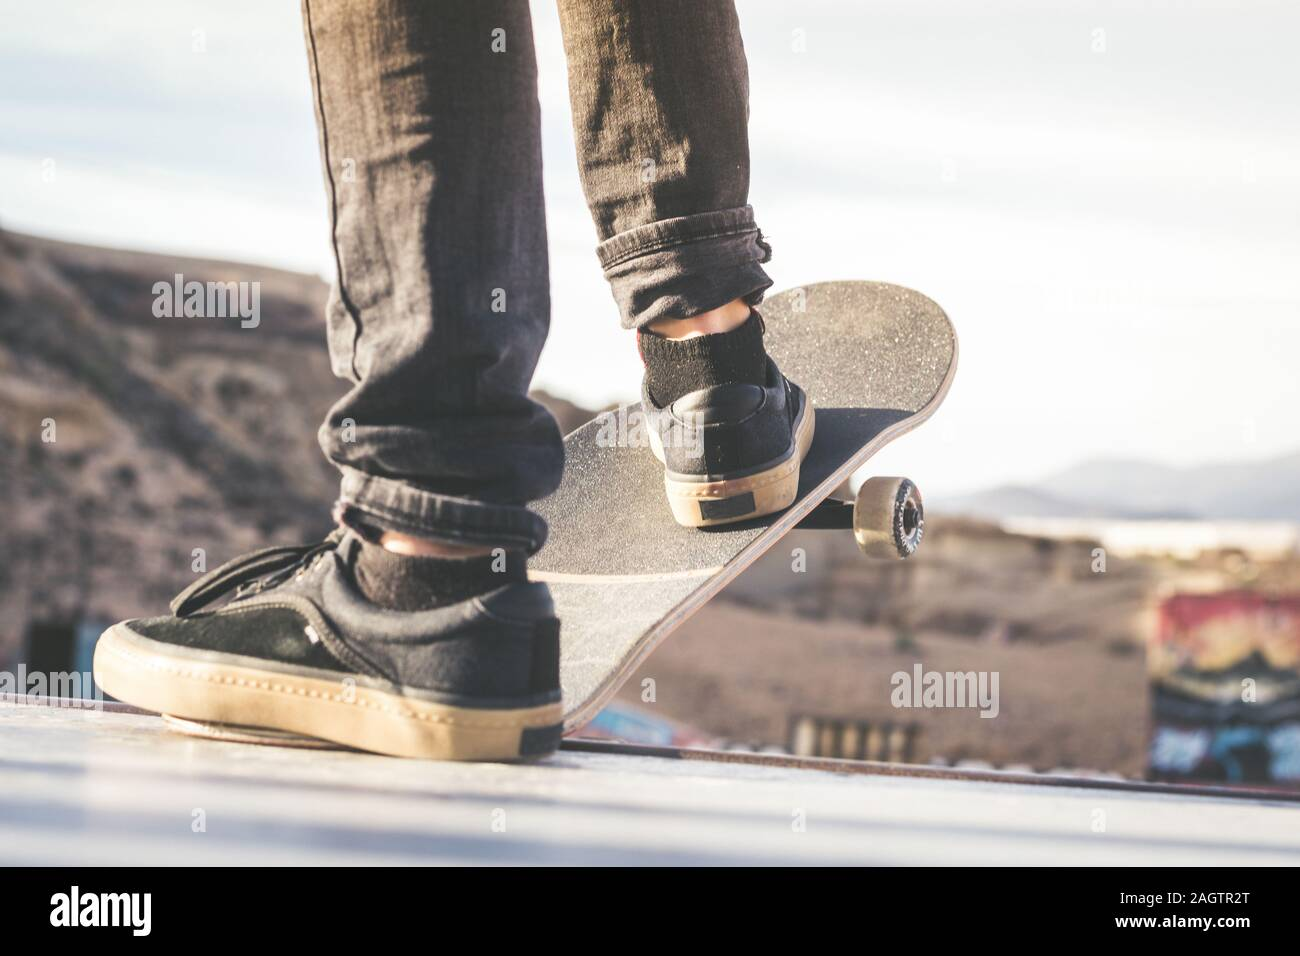 Close up view of teen's feet on a skateboard ready to start a ride over the half pipe. Skater starting jumps and tricks at the skate park. Let's go en Stock Photo